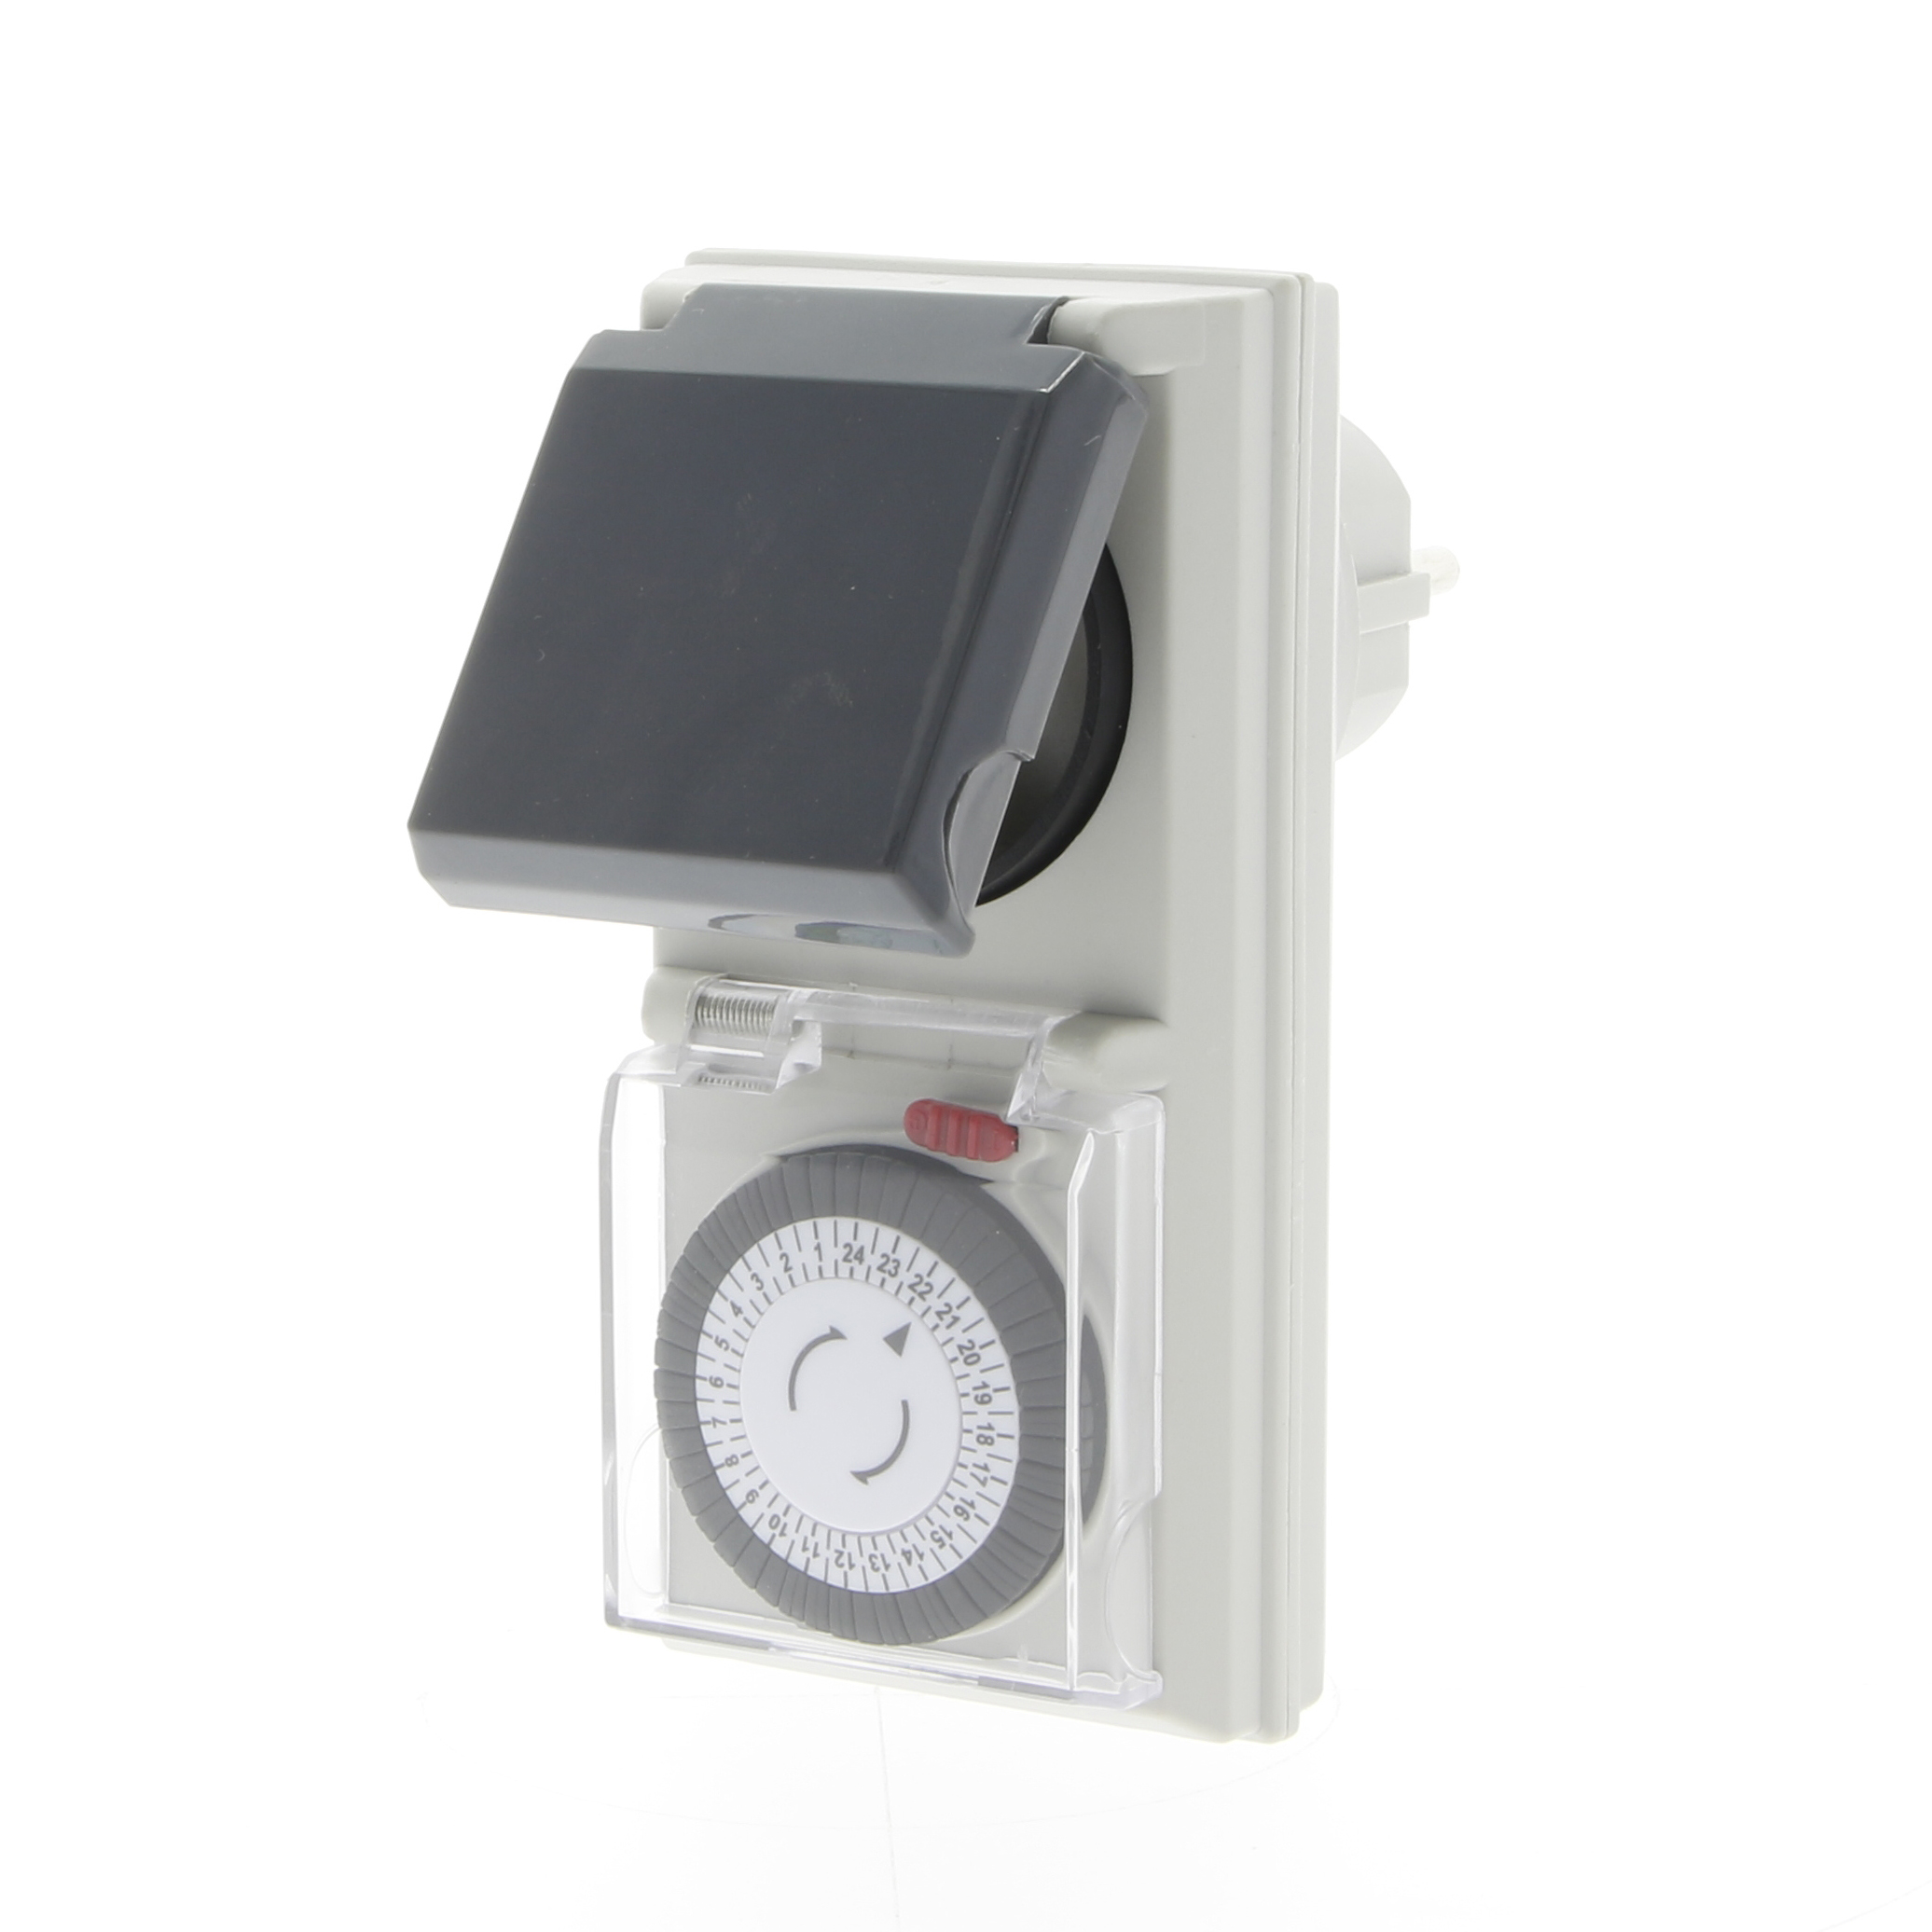 Splash-proof analogue timer with daily cycle